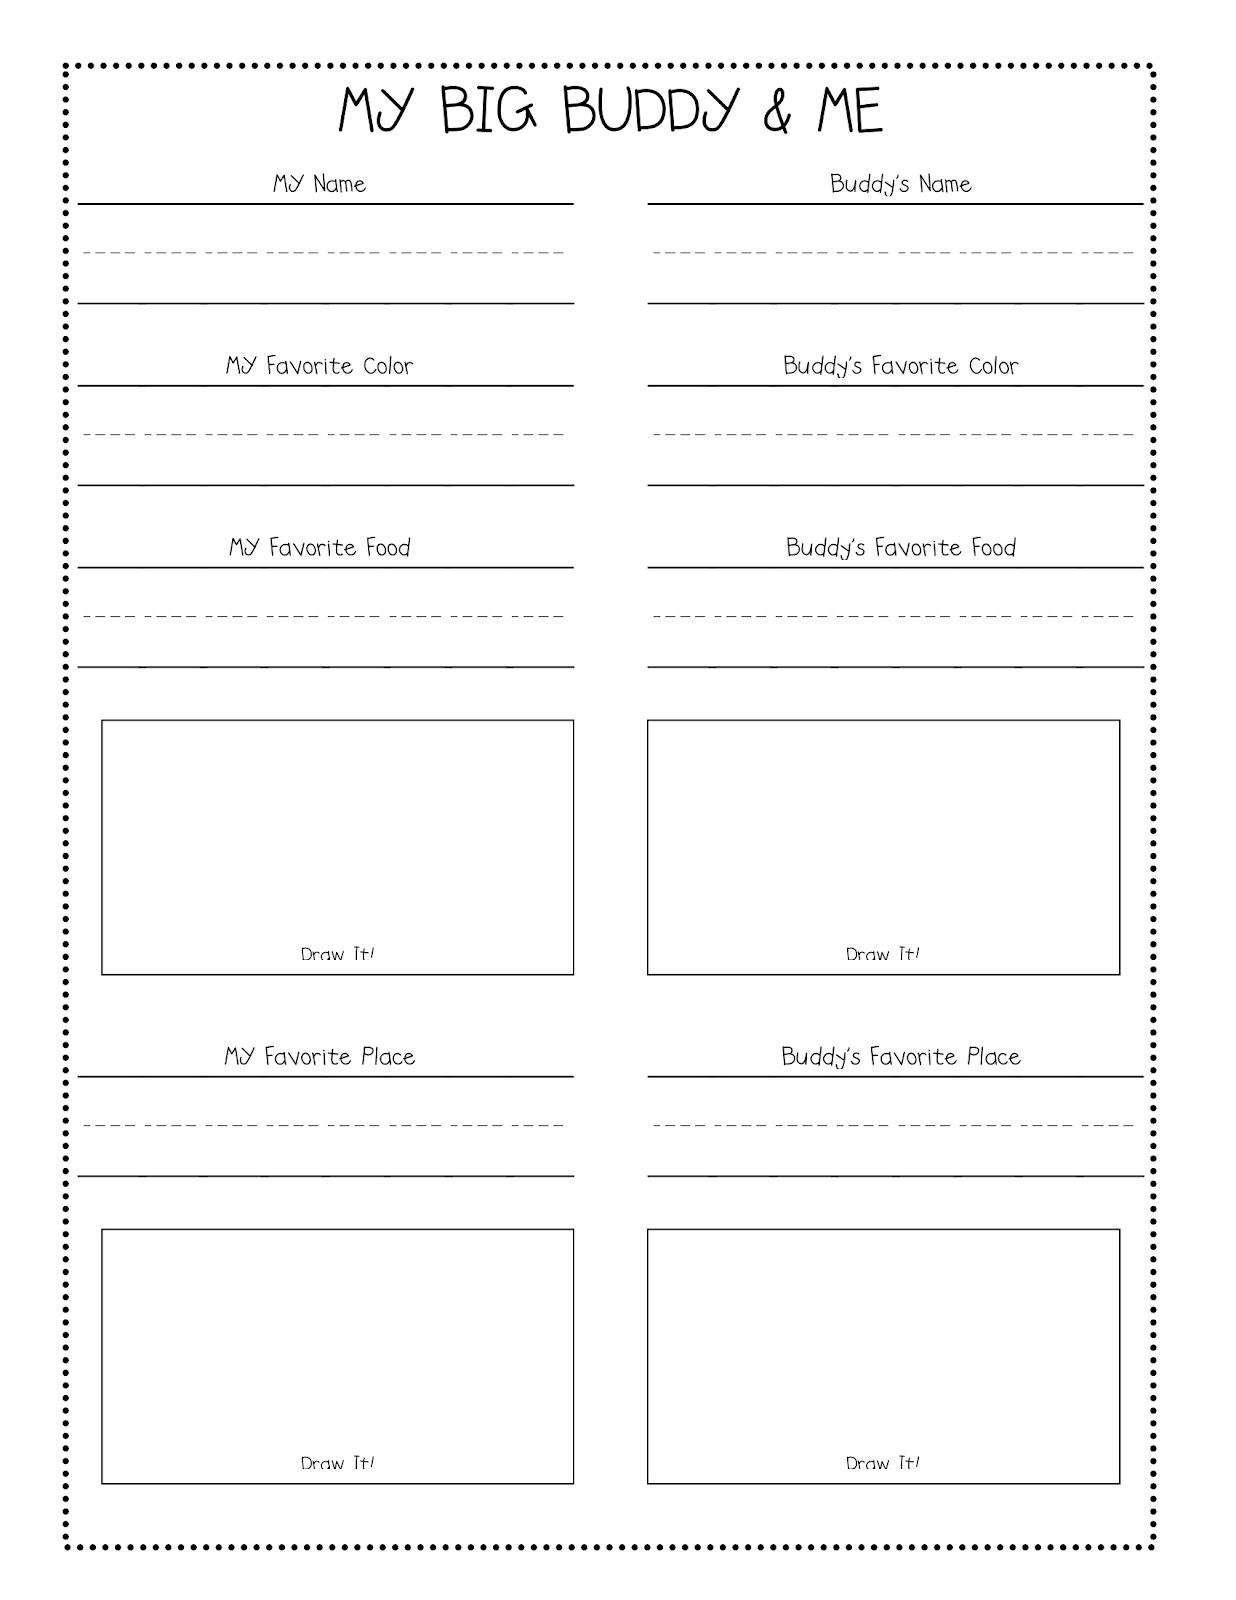 Does your class have big buddies? Free questionnaire. | Back to ...